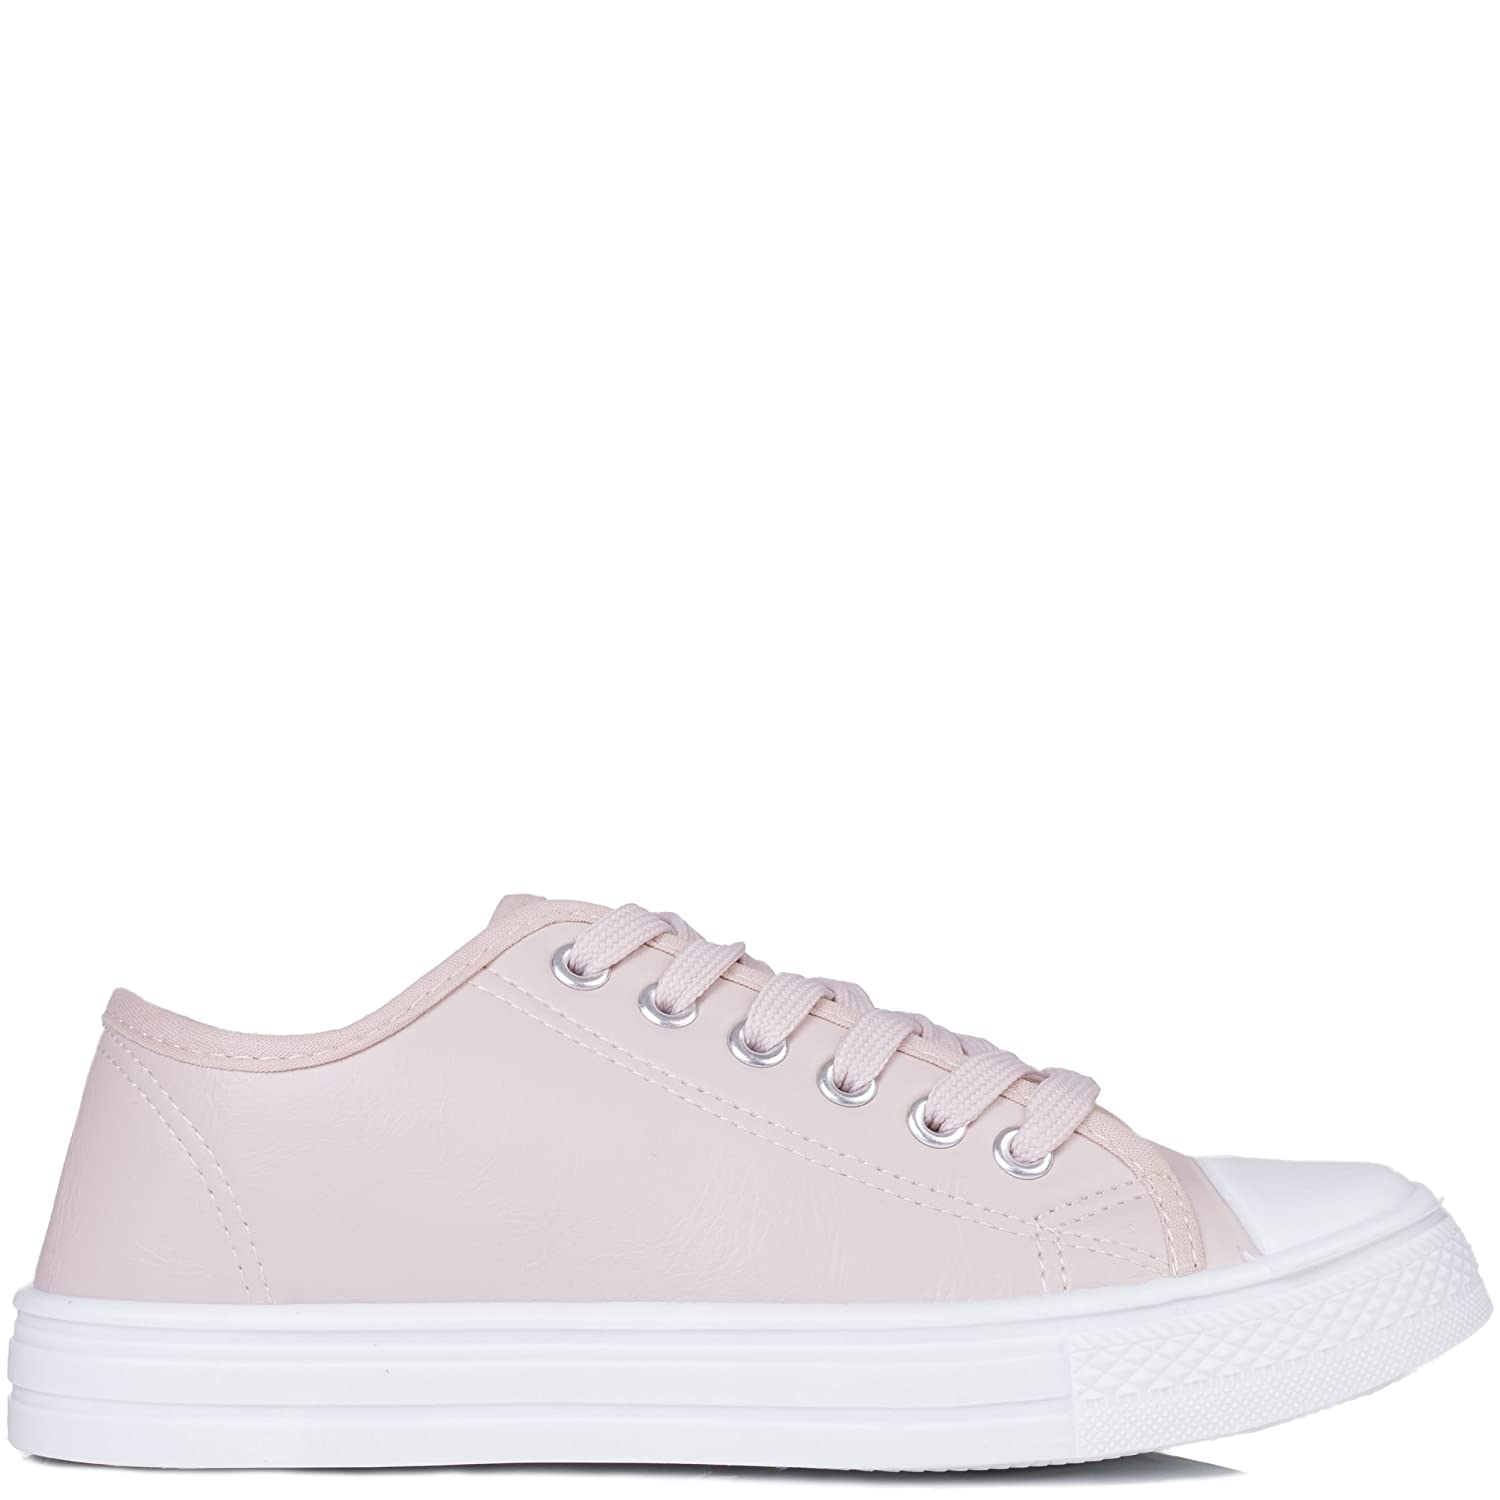 5633c844f SPY LOVE BUY Never Fear Women's Lace Up Flat Trainers Shoes: Amazon.co.uk:  Shoes & Bags